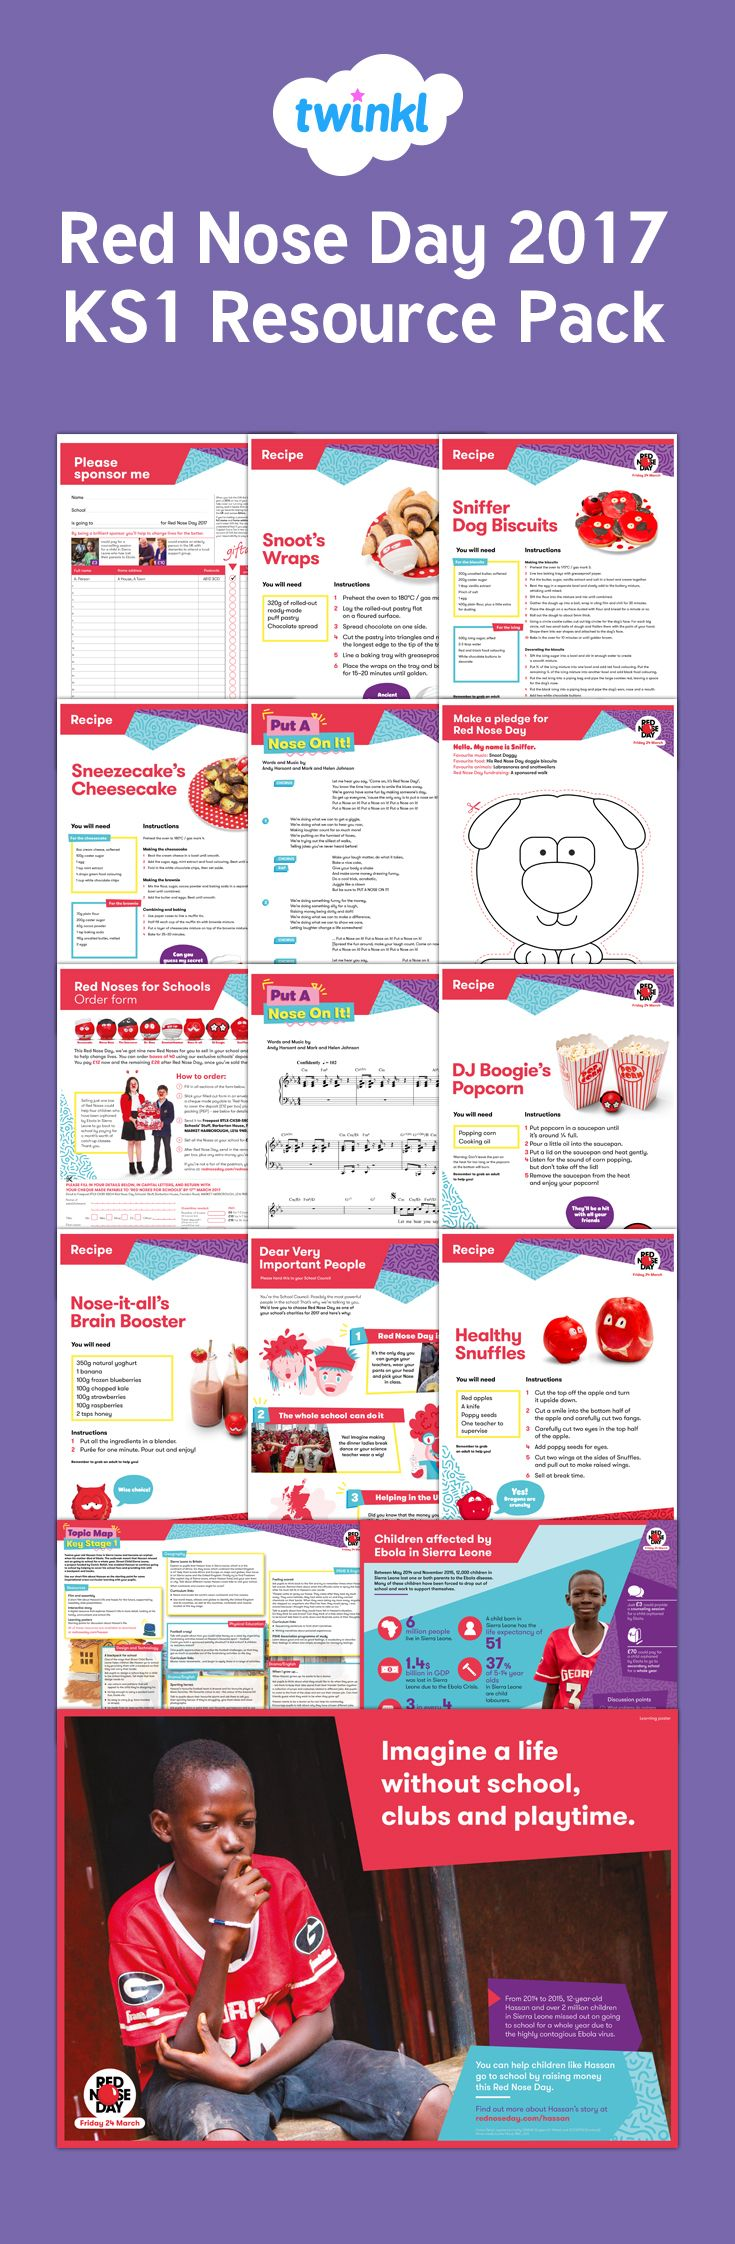 Red Nose Day 2017 Primary Resource Pack - This pack has loads of fab fundraising ideas and learning resources for your class this Red Nose Day.